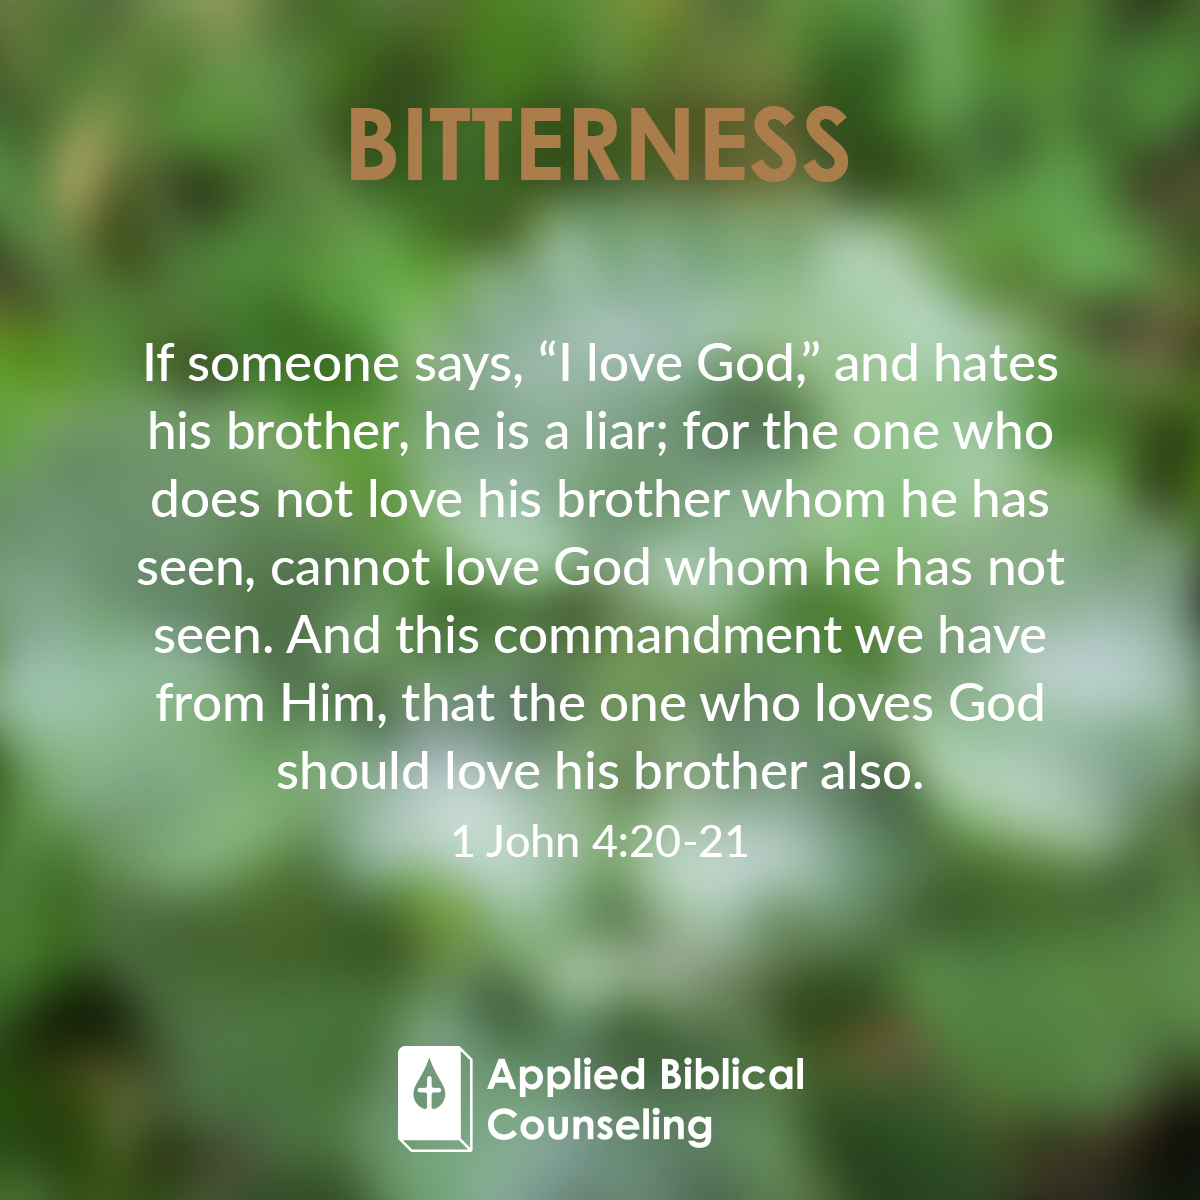 applied biblical counseling facebook w14 bitterness 5